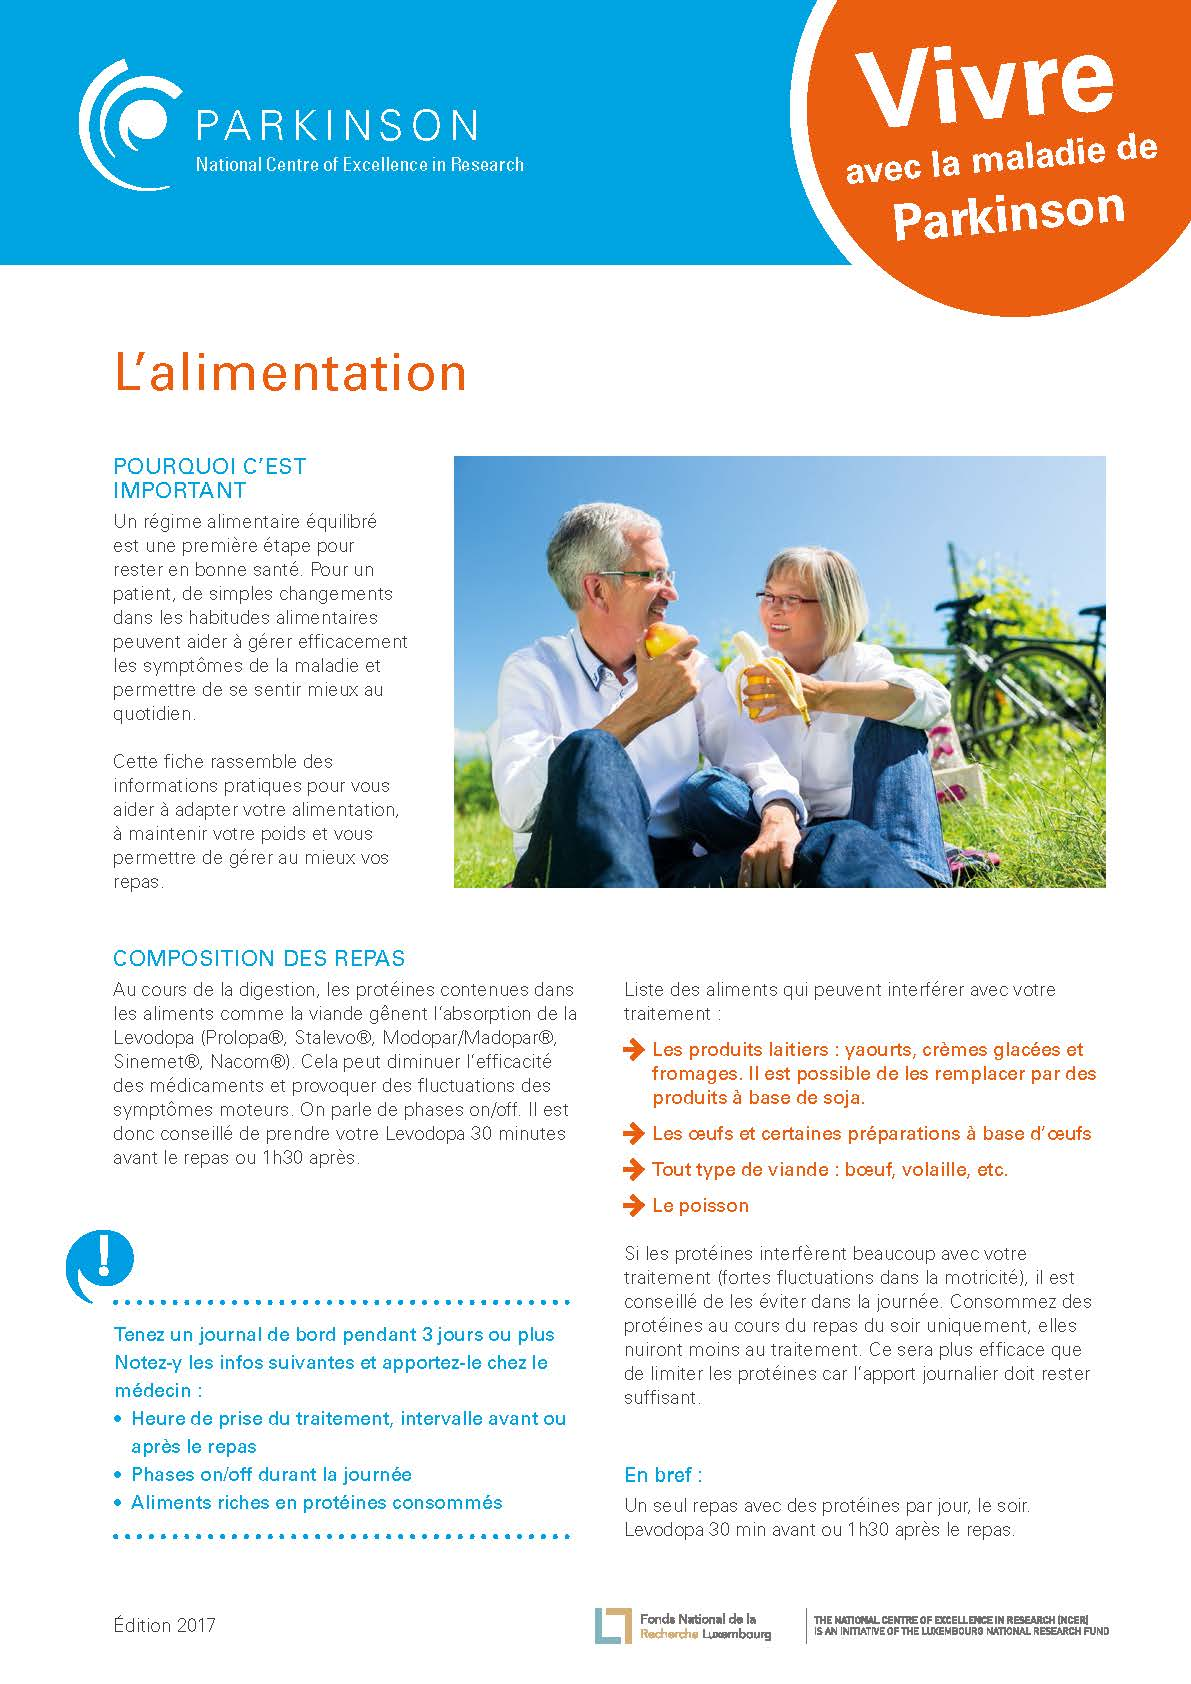 fact sheet - la maladie de Parkinson - alimentation